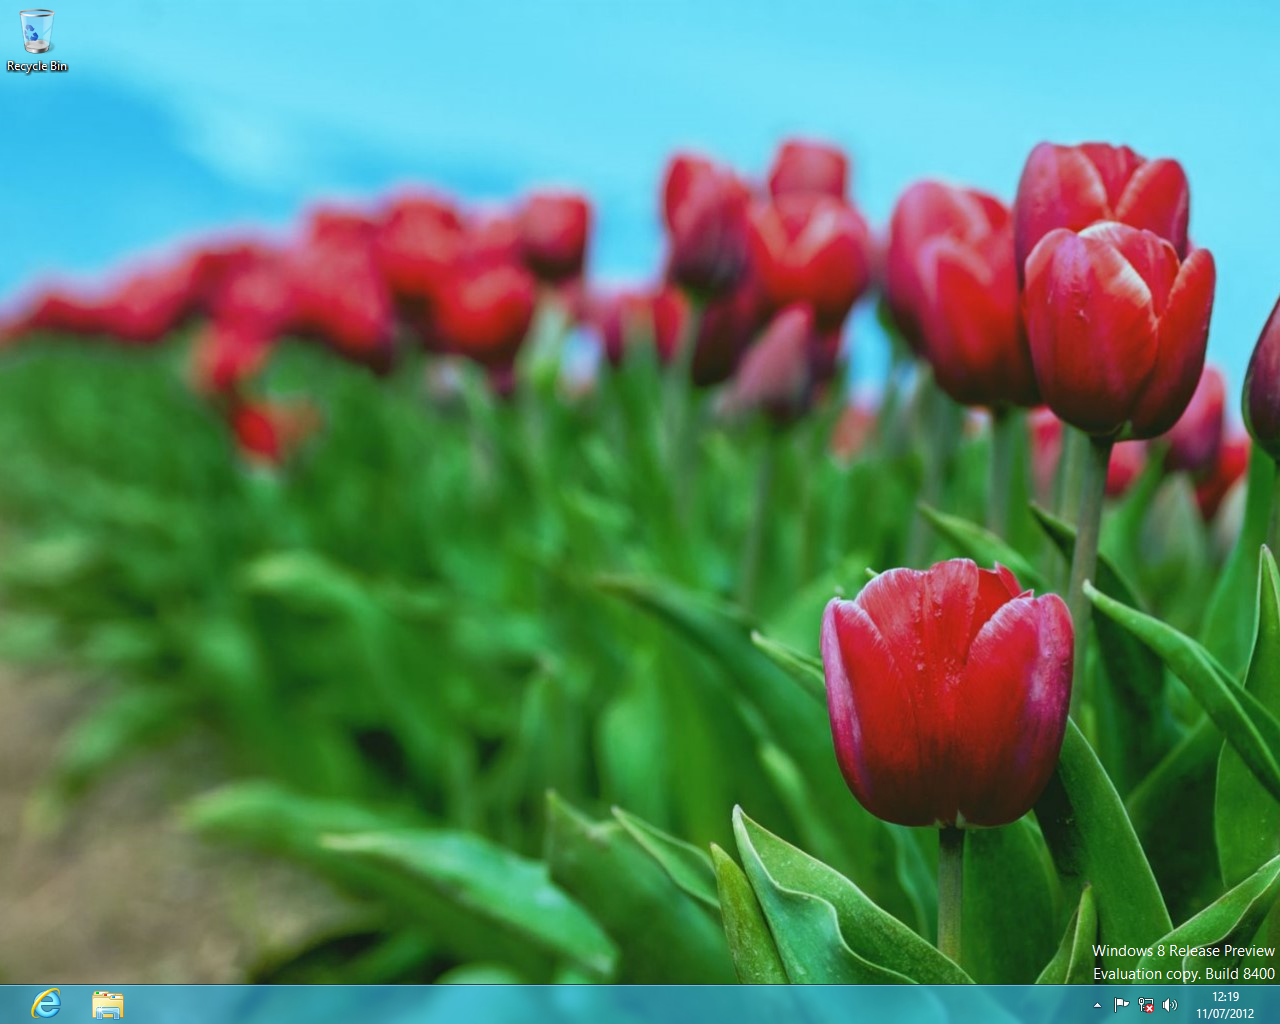 A cleaner, more streamlined desktop in Windows 8